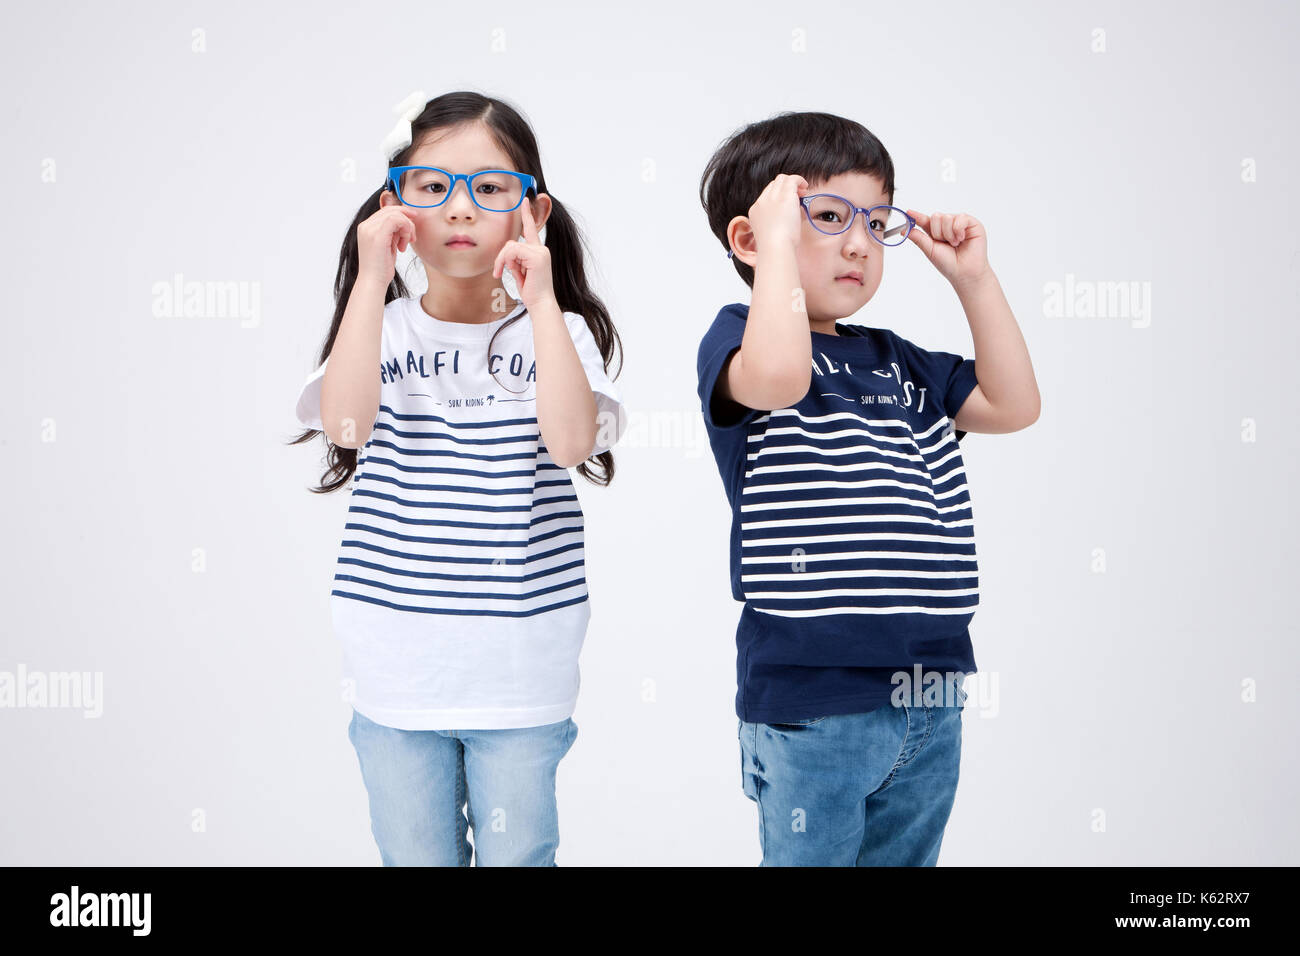 The little girl and boy 253 - Stock Image